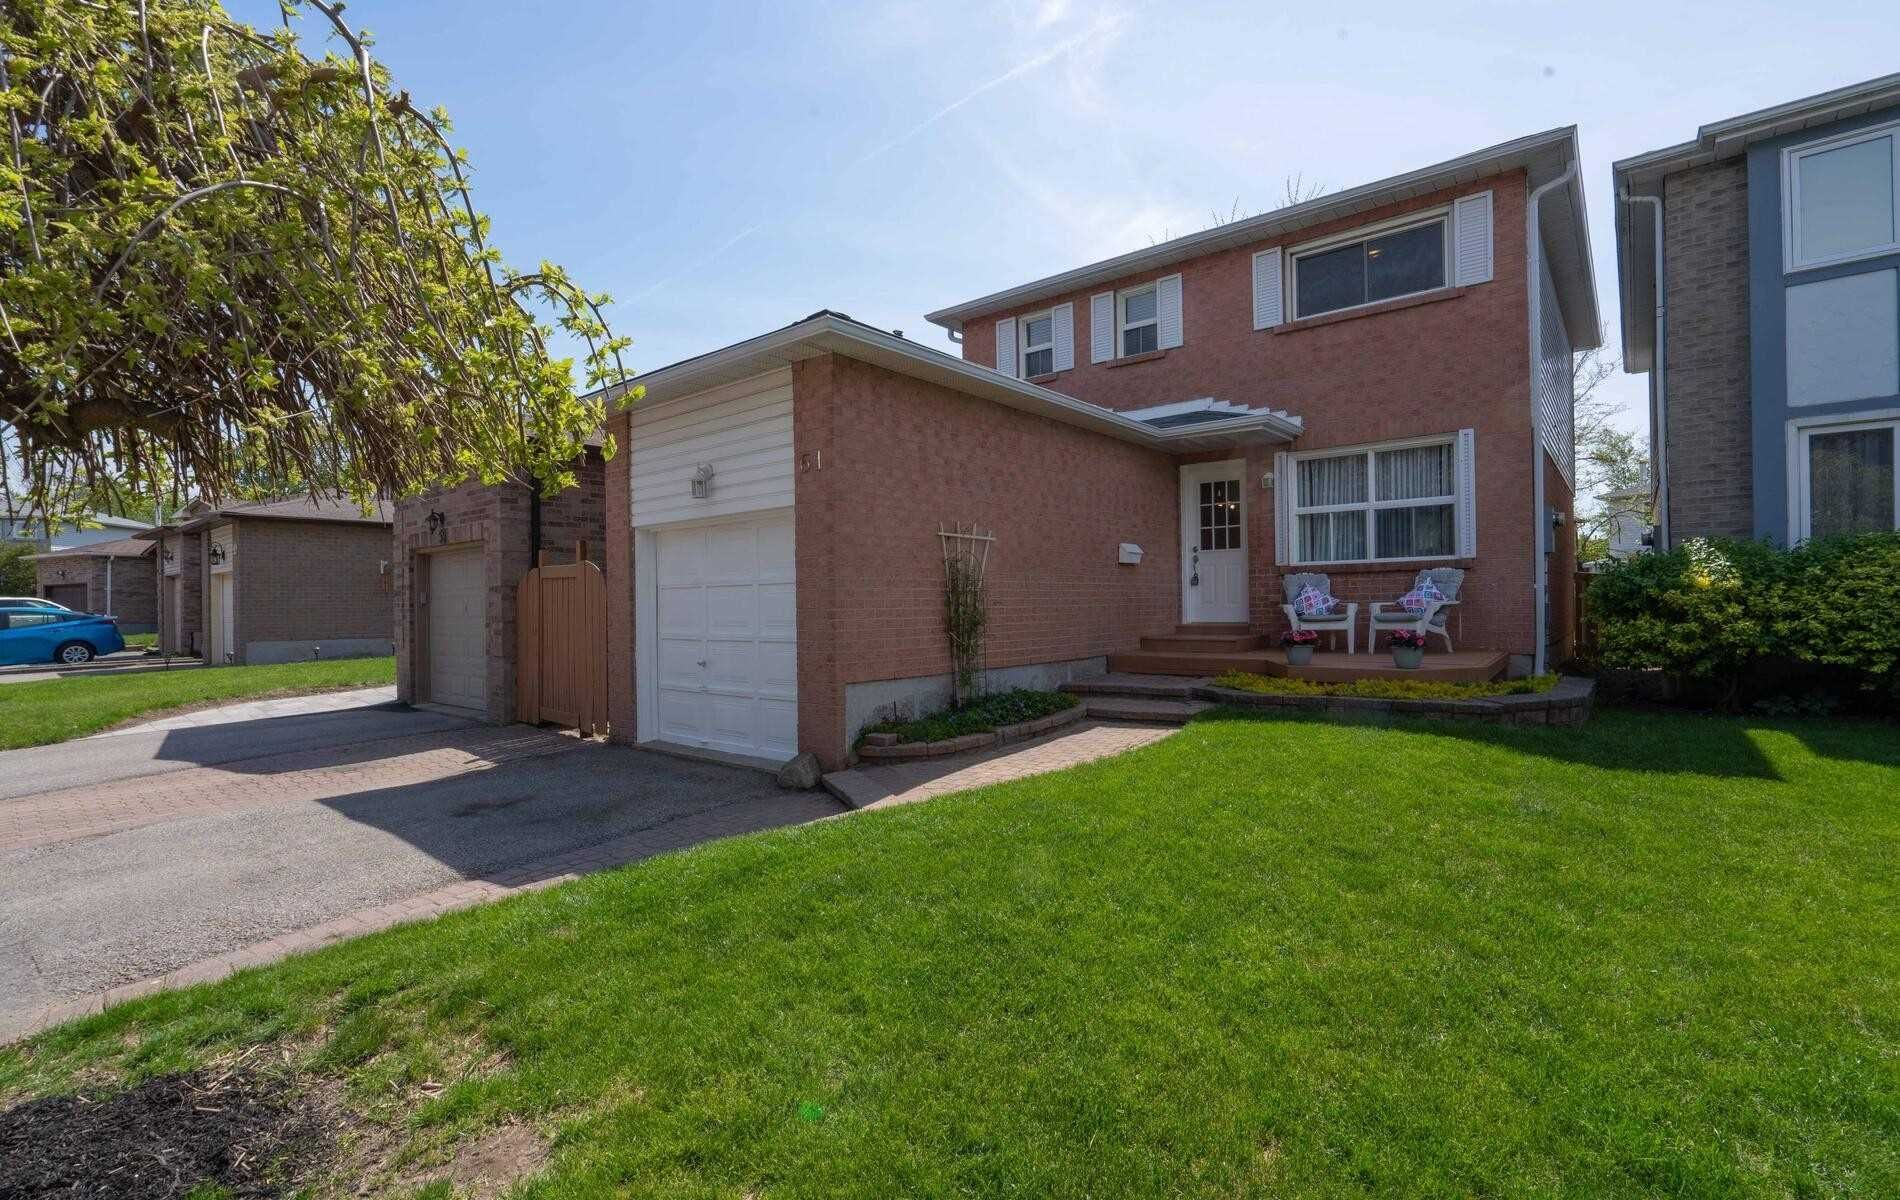 Main Photo: 61 Charlton Crescent in Ajax: South West House (2-Storey) for sale : MLS®# E5244173